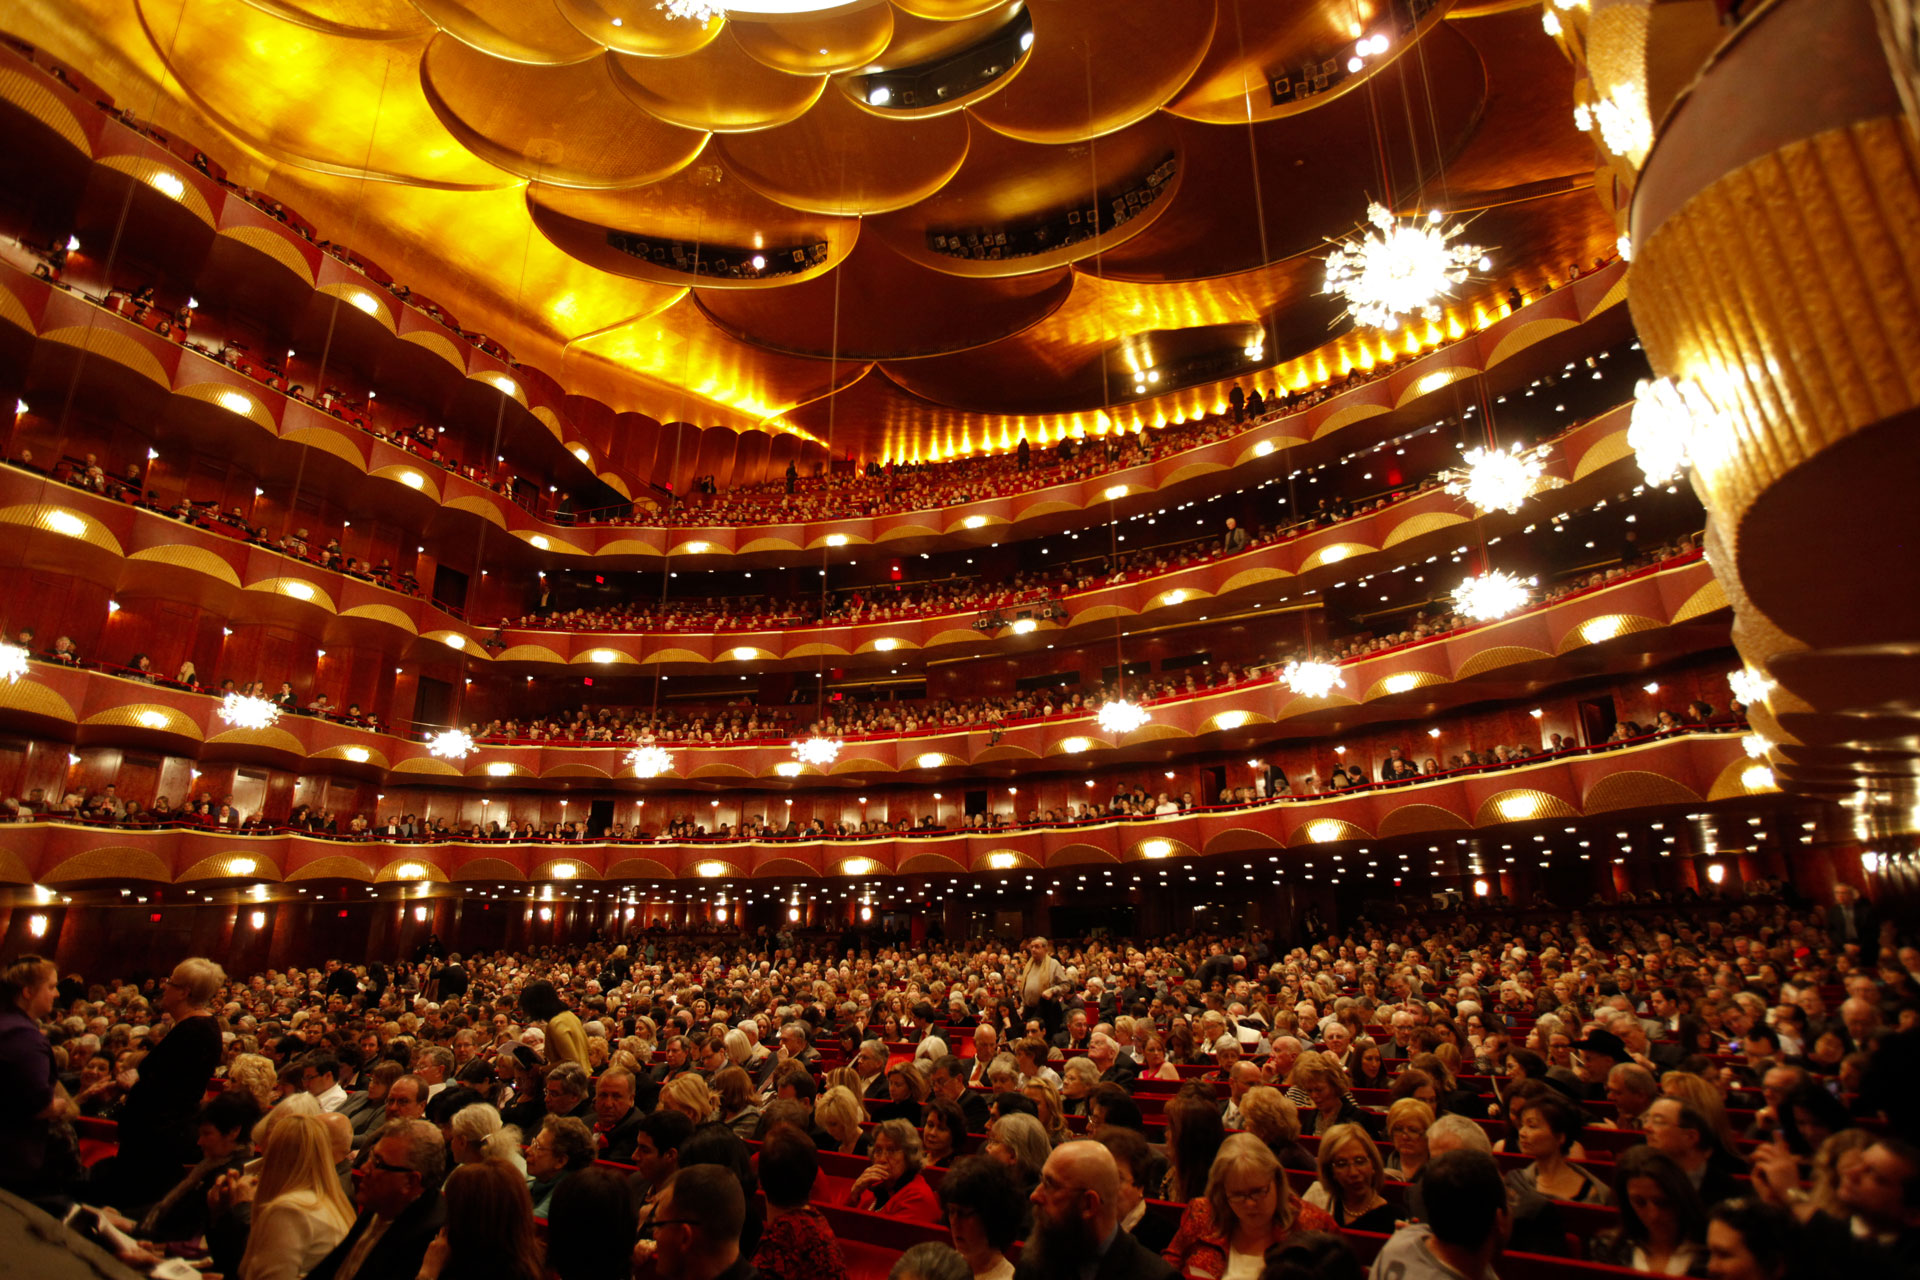 Metropolitan Opera House - New York